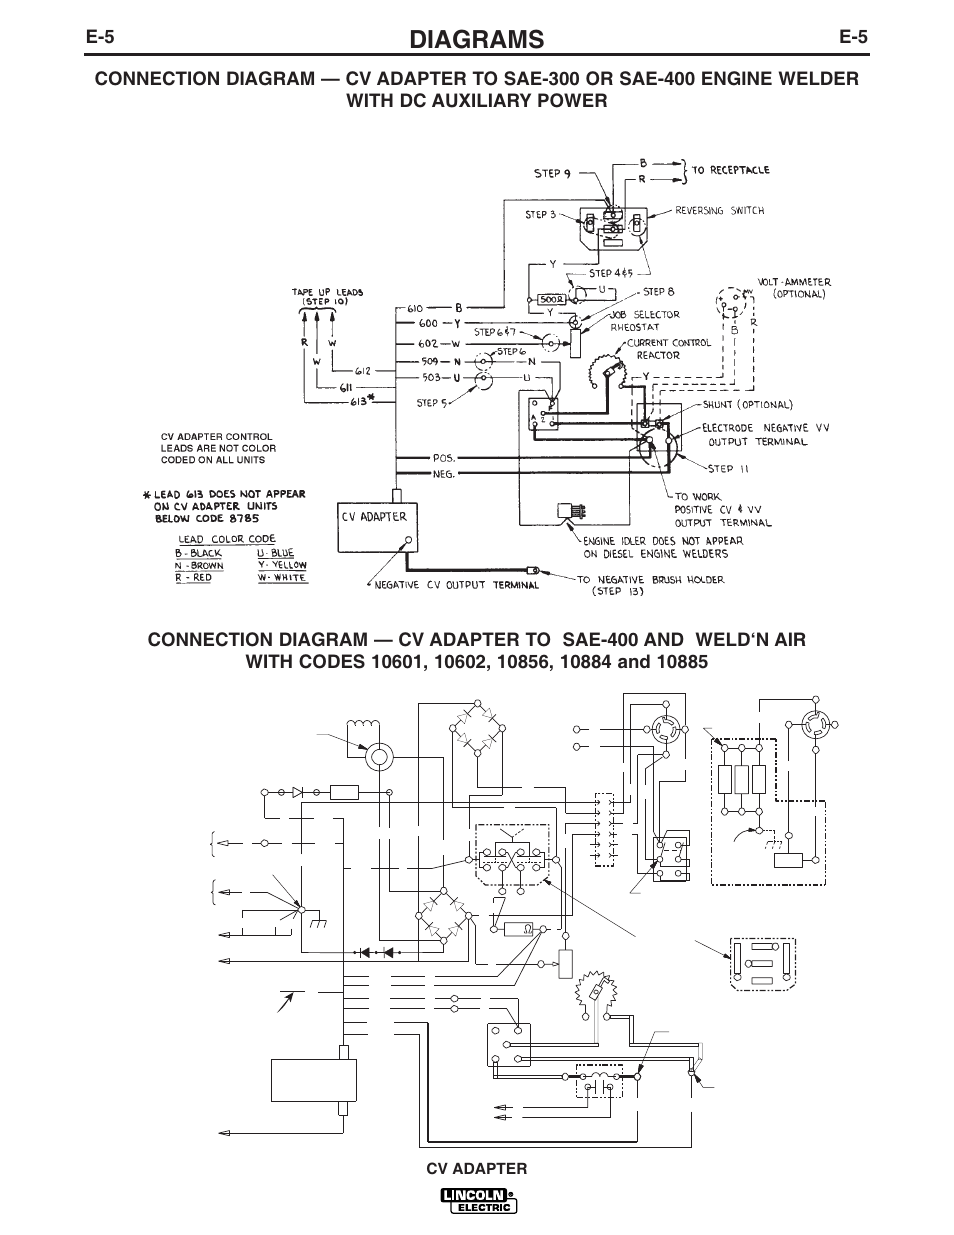 lincoln sae 400 welder wiring diagram lincoln 225 arc welder wiring diagram lincoln sae 400 welder wiring diagram - somurich.com